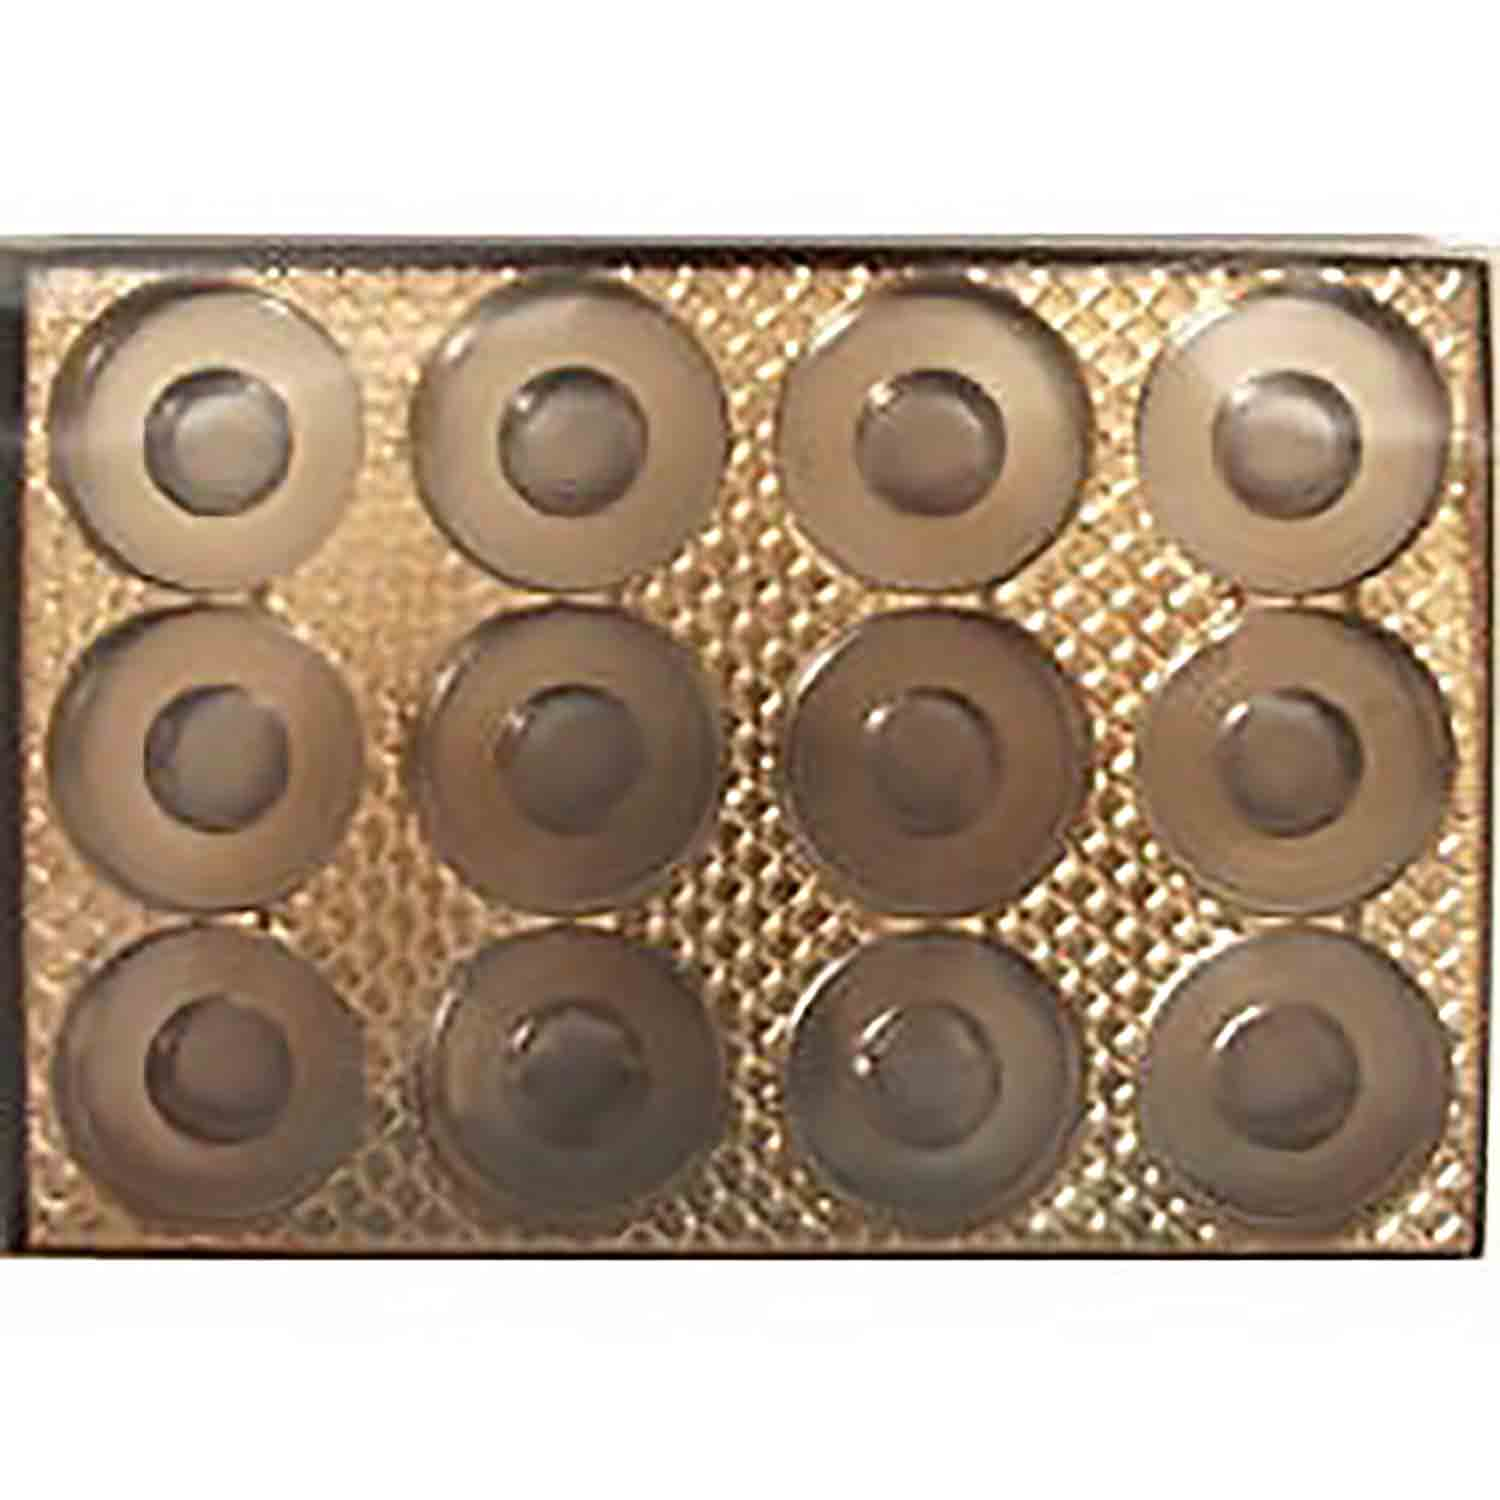 12 Cavity Cookie or Truffle Gold Insert Candy Box with Clear Lid